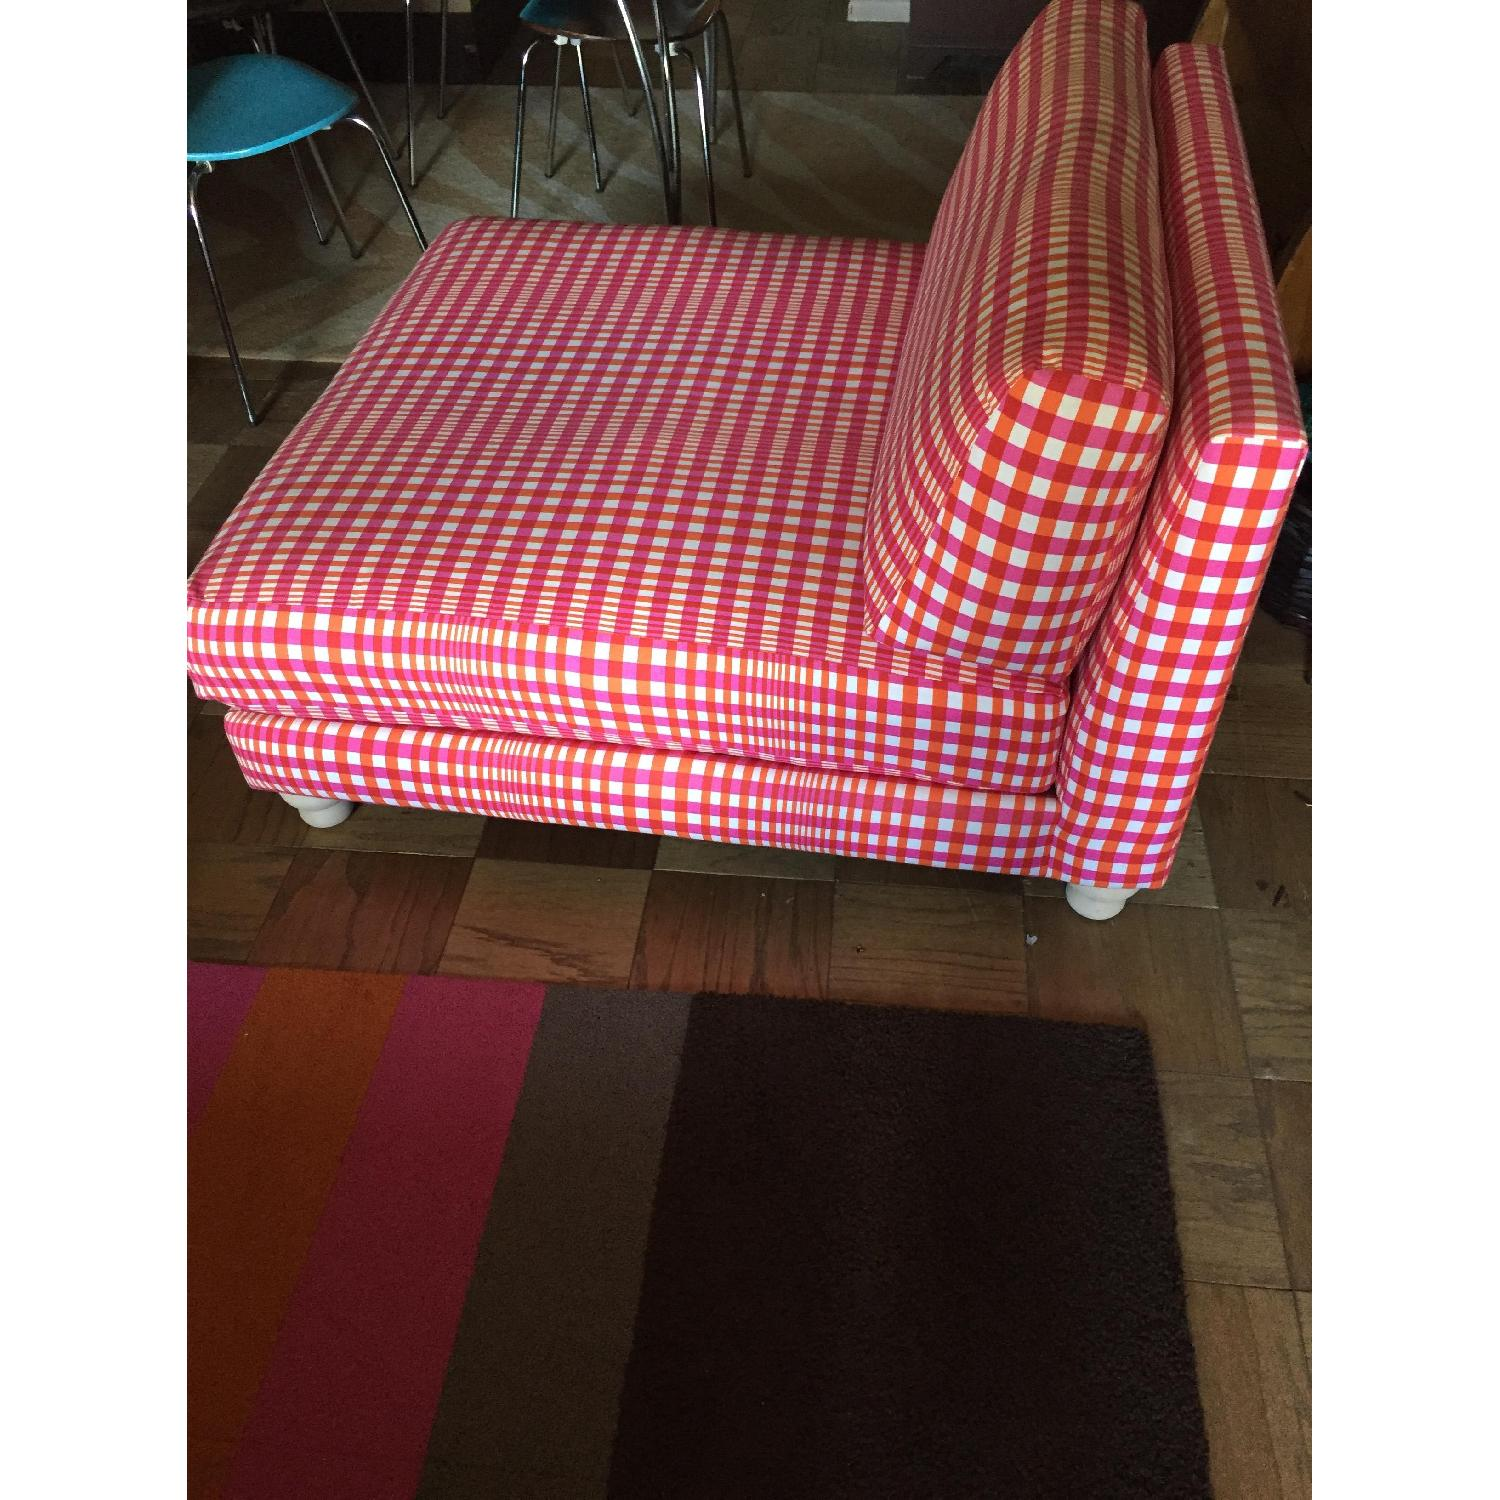 CB2 Piazza Gingham Chair - image-3